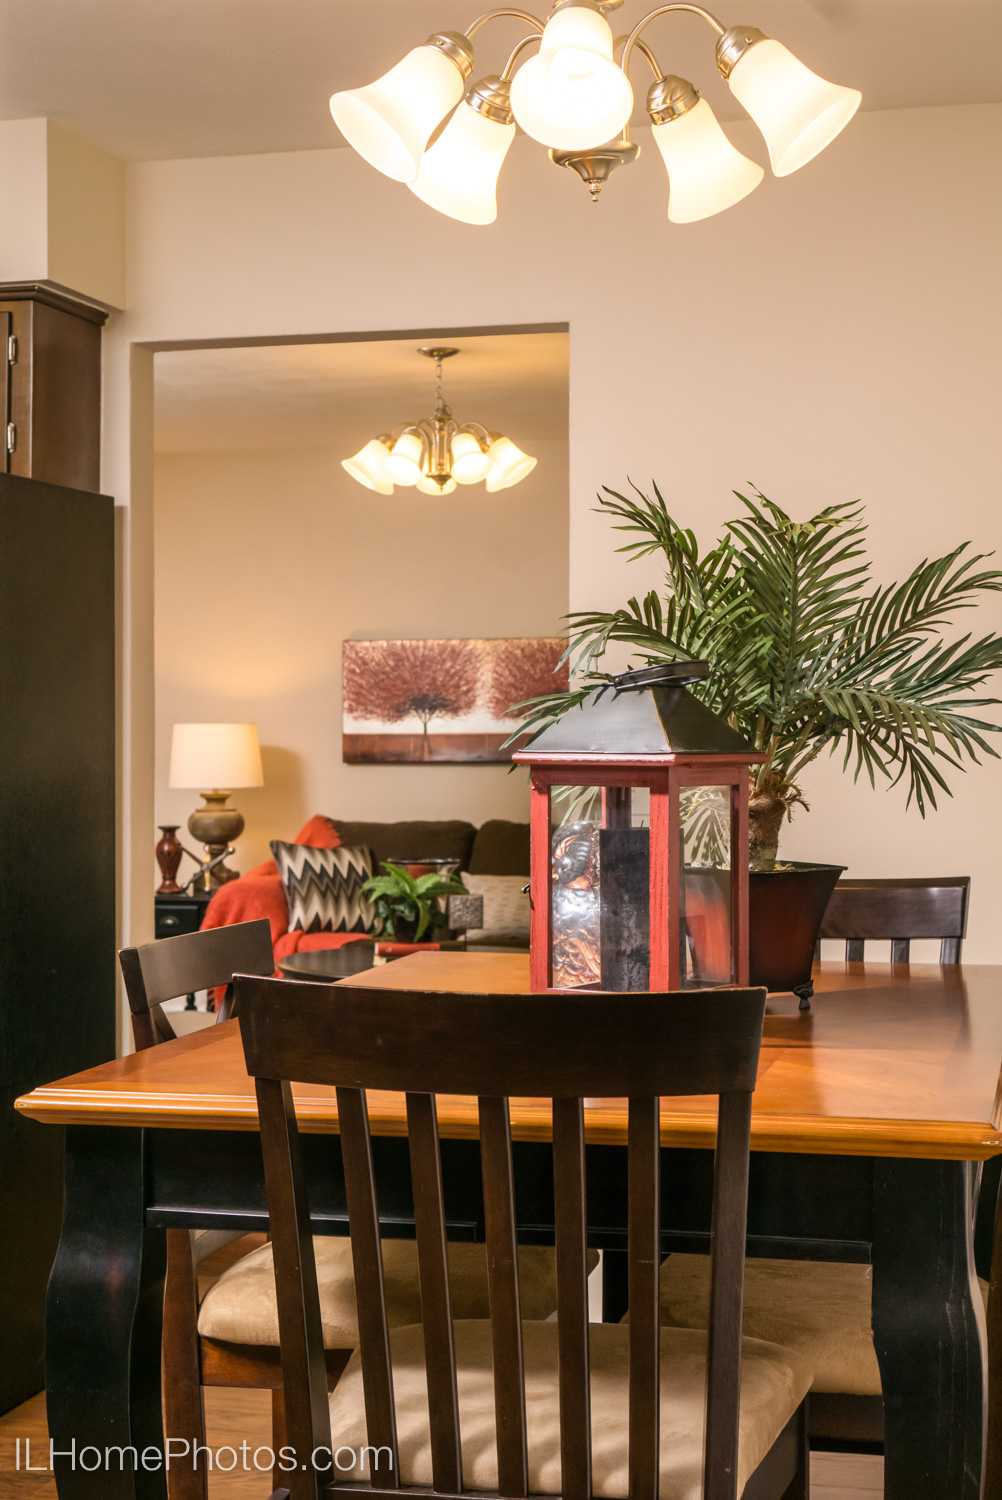 Interior dining area photograph for real estate in Morton, IL :: Illinois Home Photography by Michael Gowin, Lincoln, IL